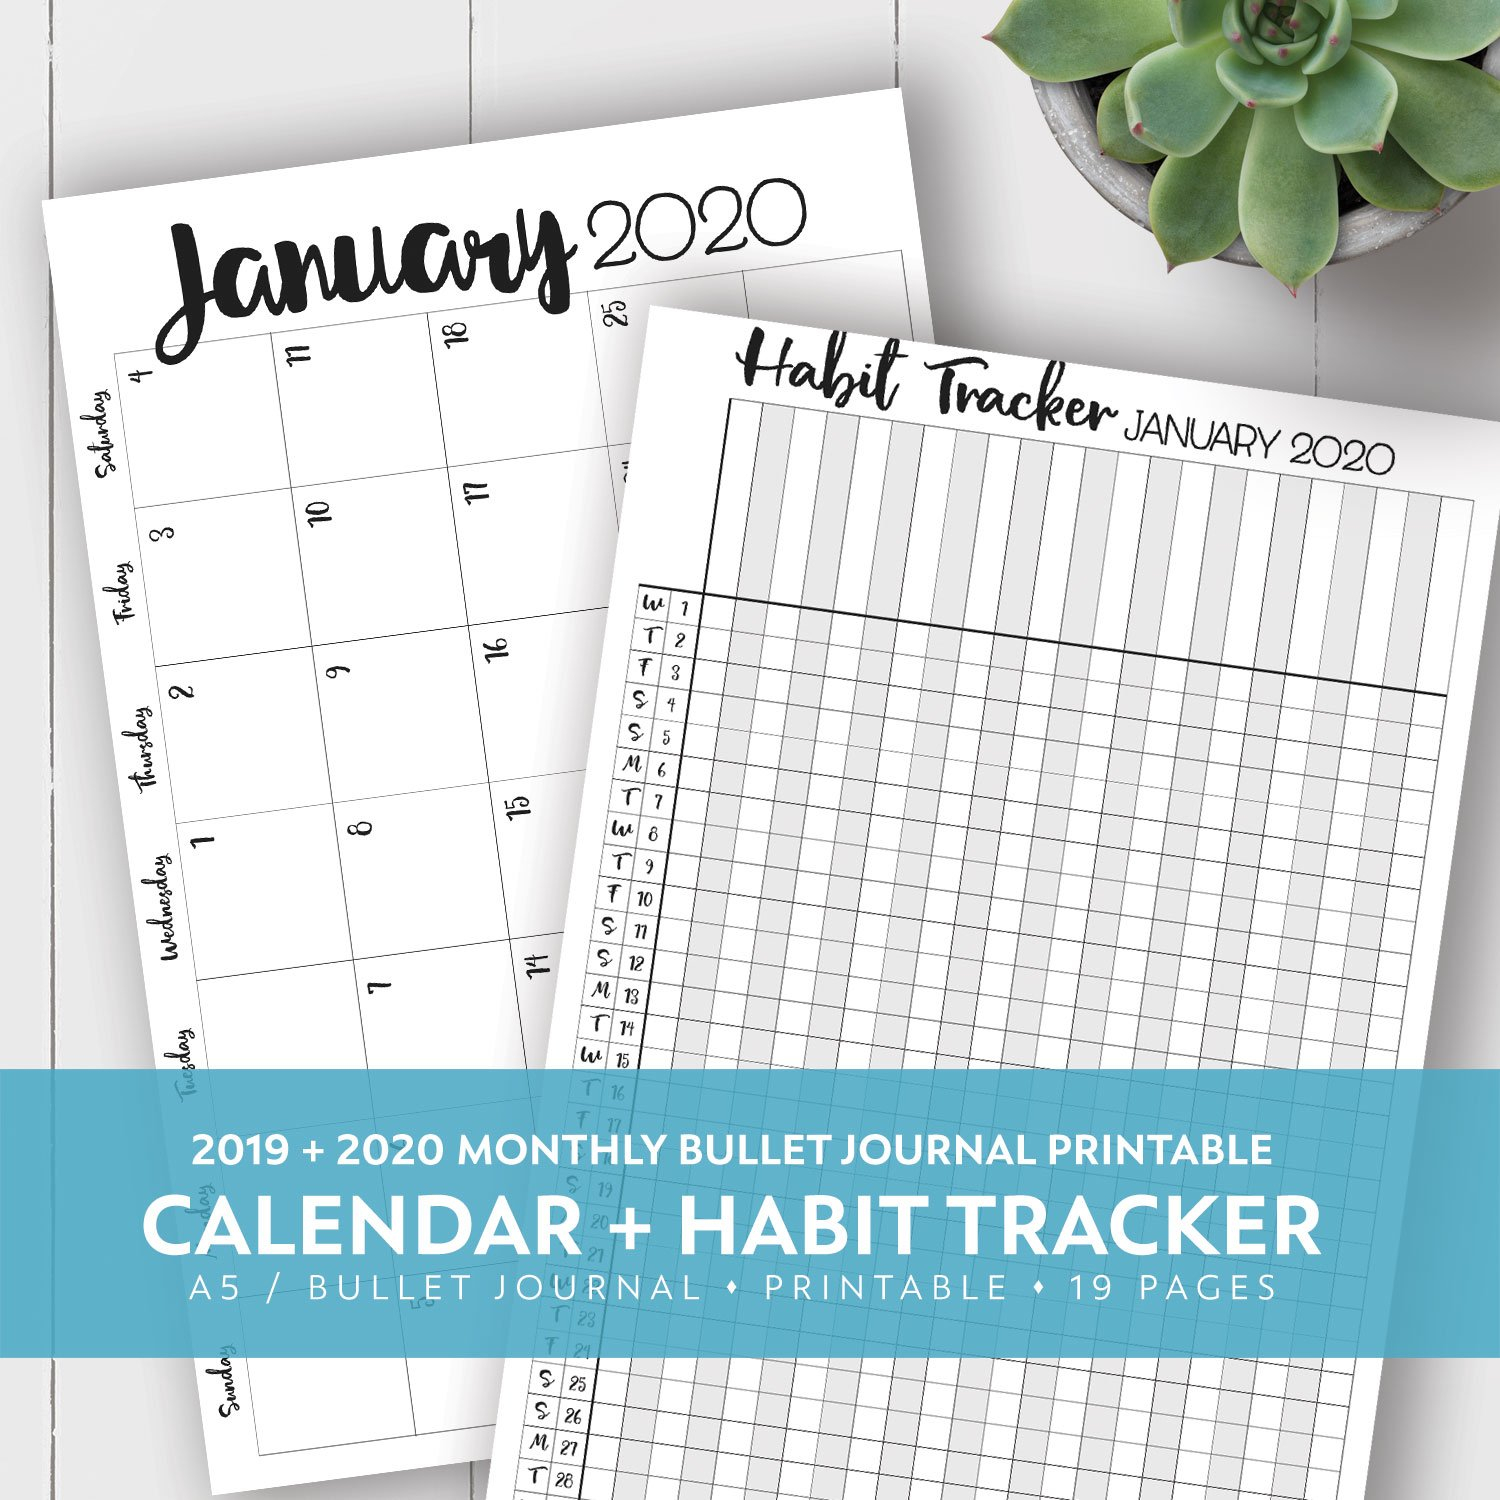 2019 + 2020 Monthly Printable Calendar + Habit Tracker Kit 5.5 X 8.5 Inch Calendar